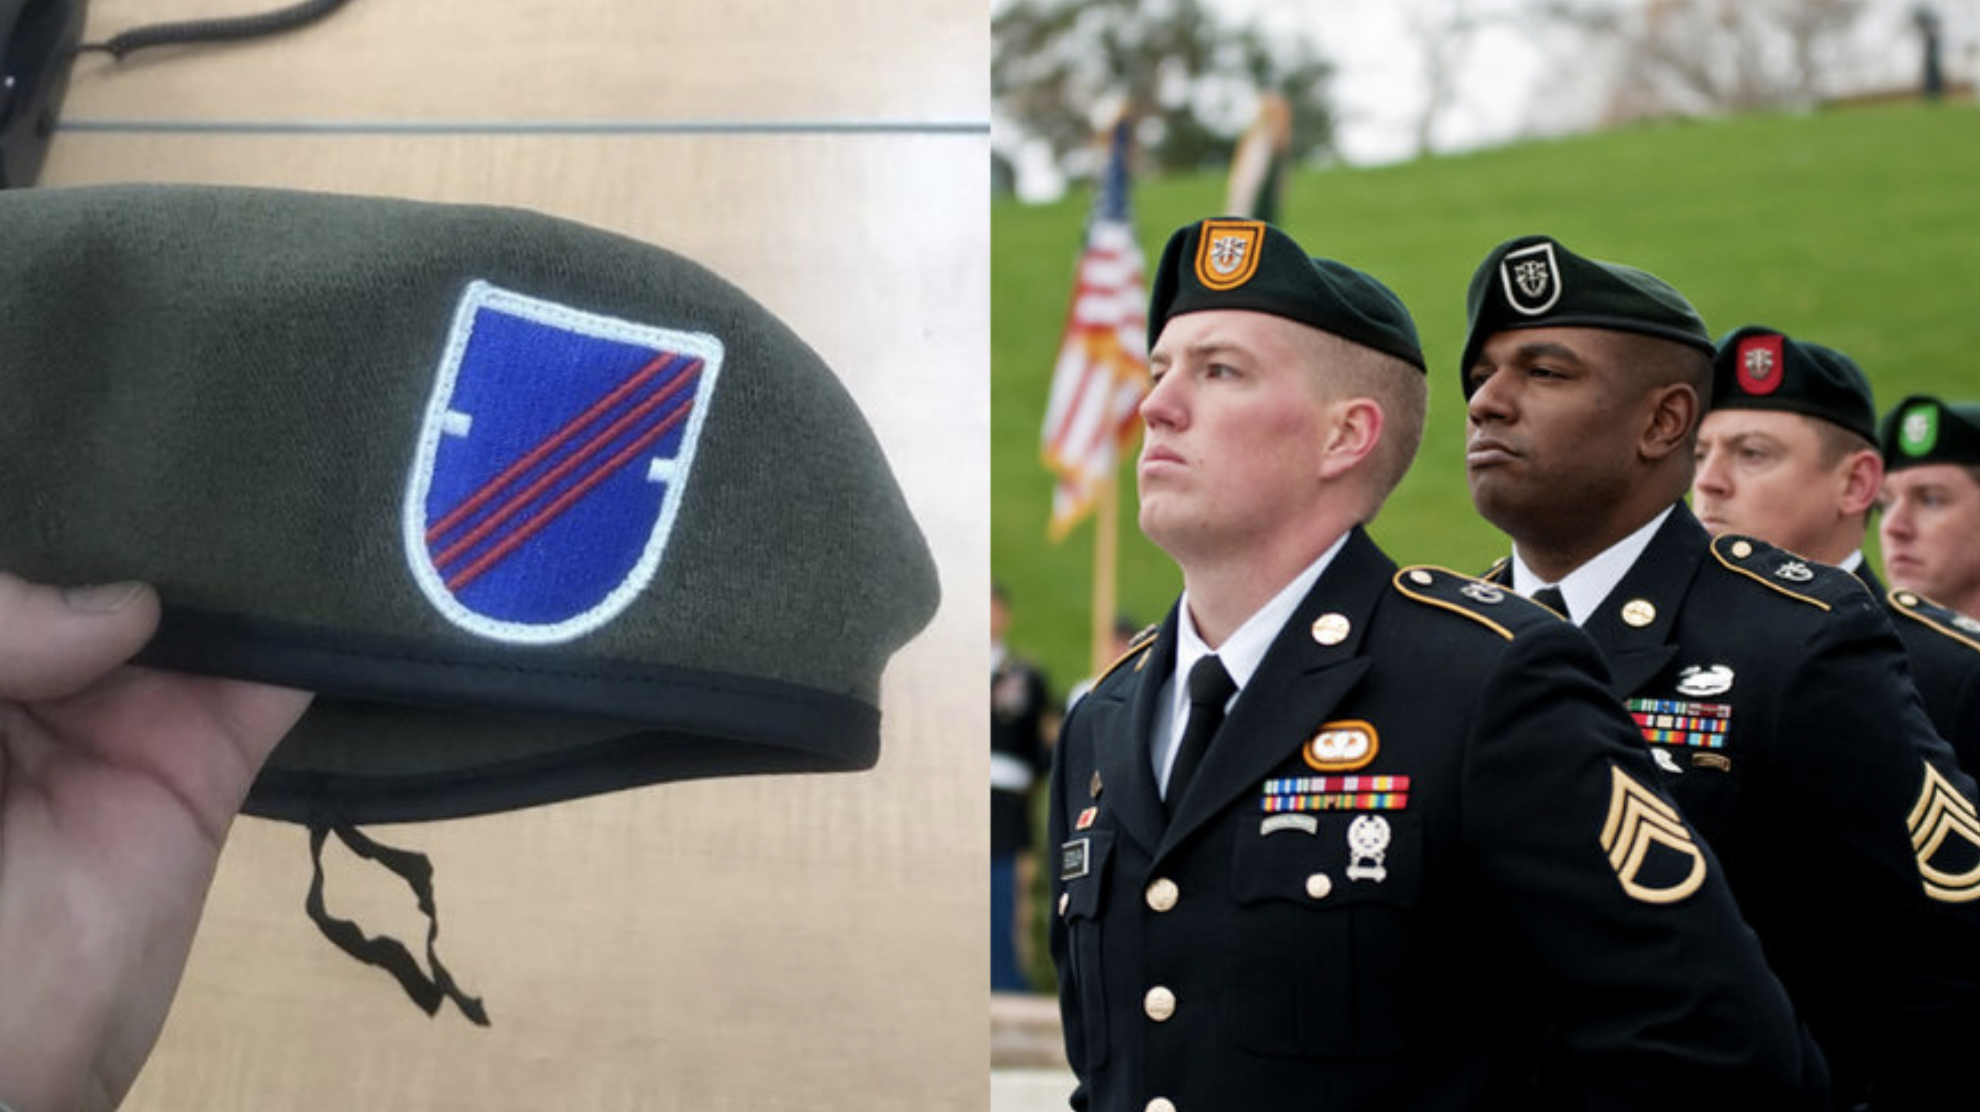 Tempers Flare Among Special Forces Vets Over New Unit's Beret — and Mission - Task & Purpose | October 29, 2017